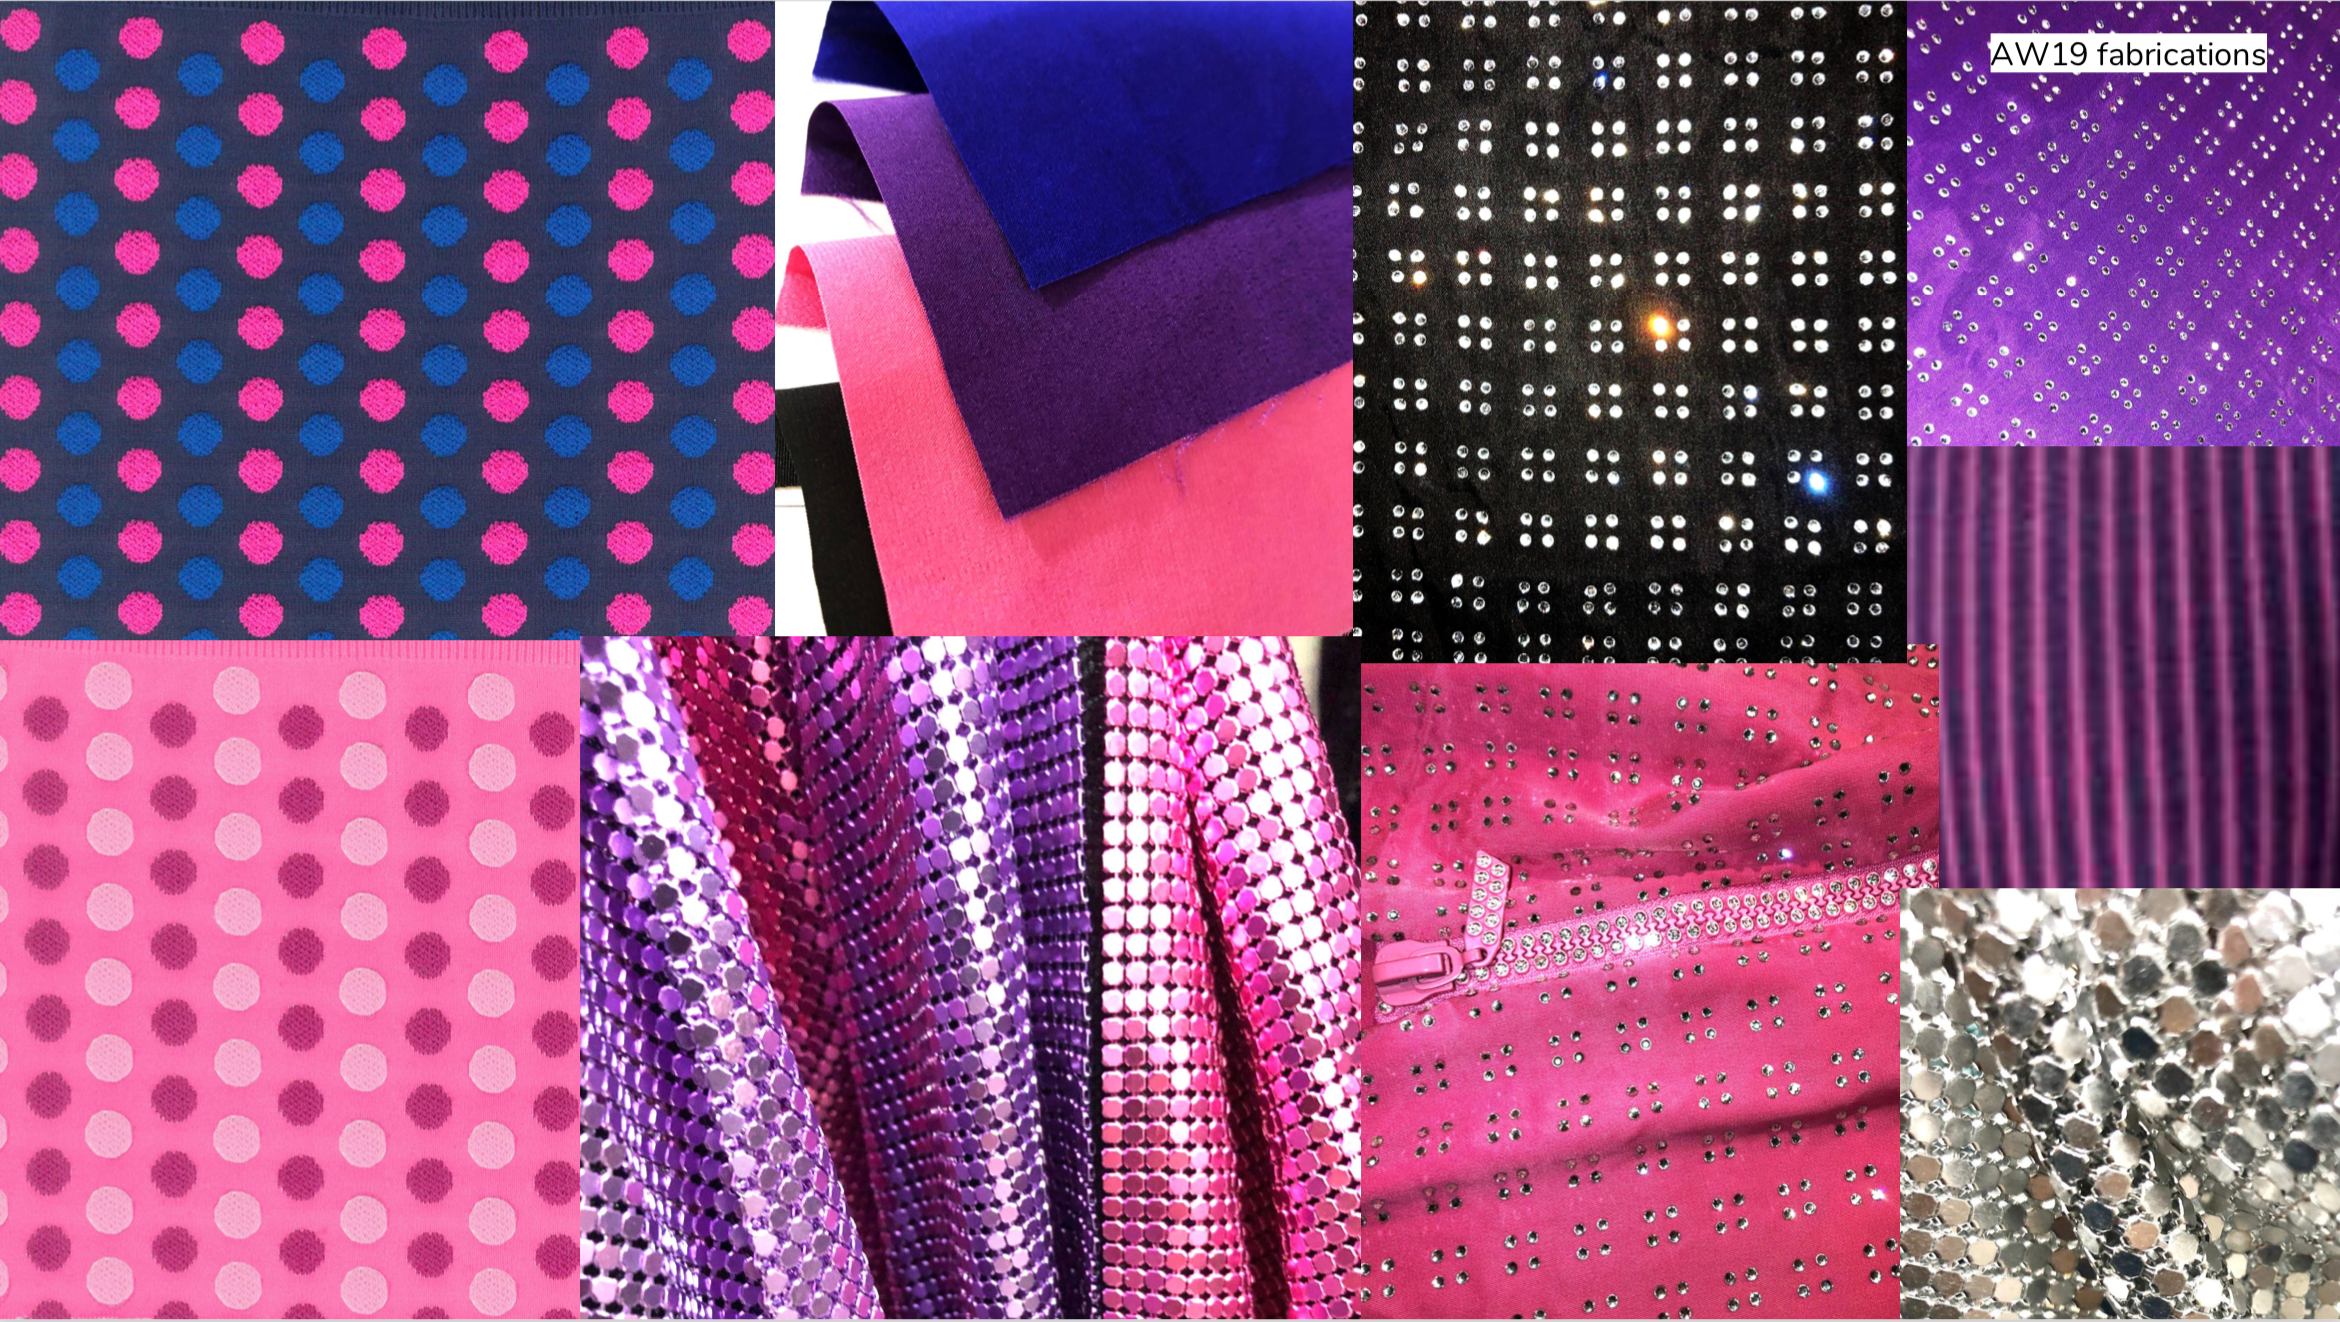 Fabric swatches from the AW19 collection